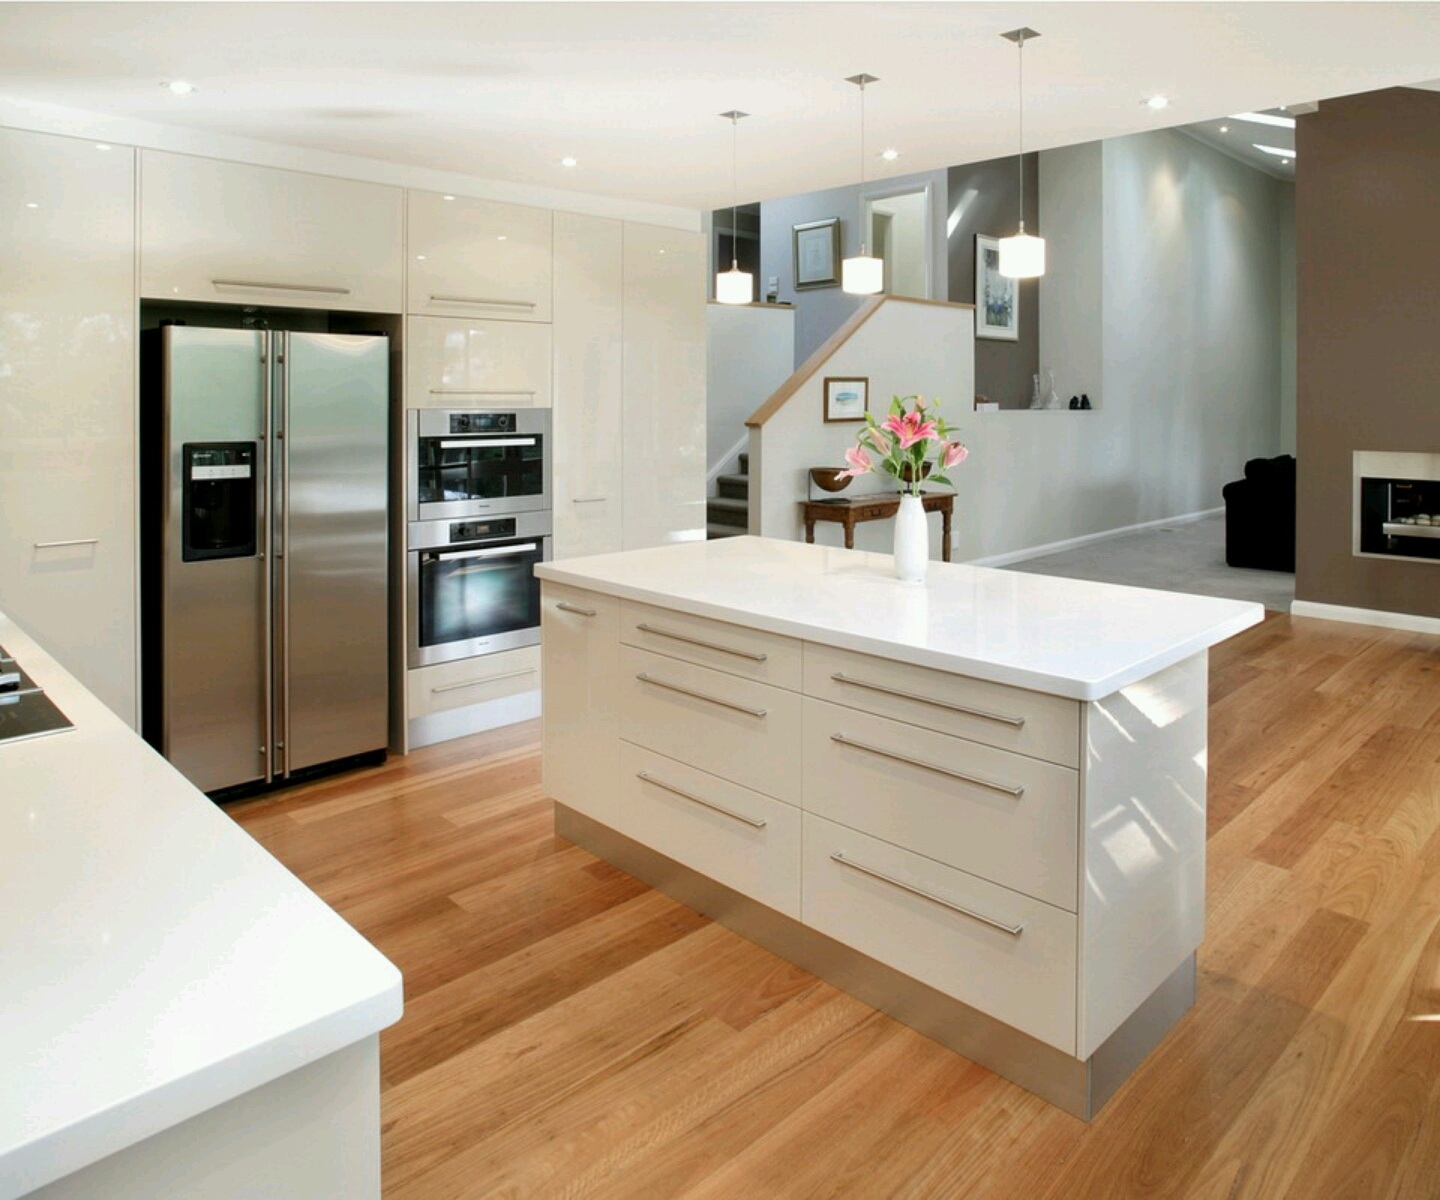 Luxury kitchen, modern kitchen cabinets designs ~ Furniture Gallery